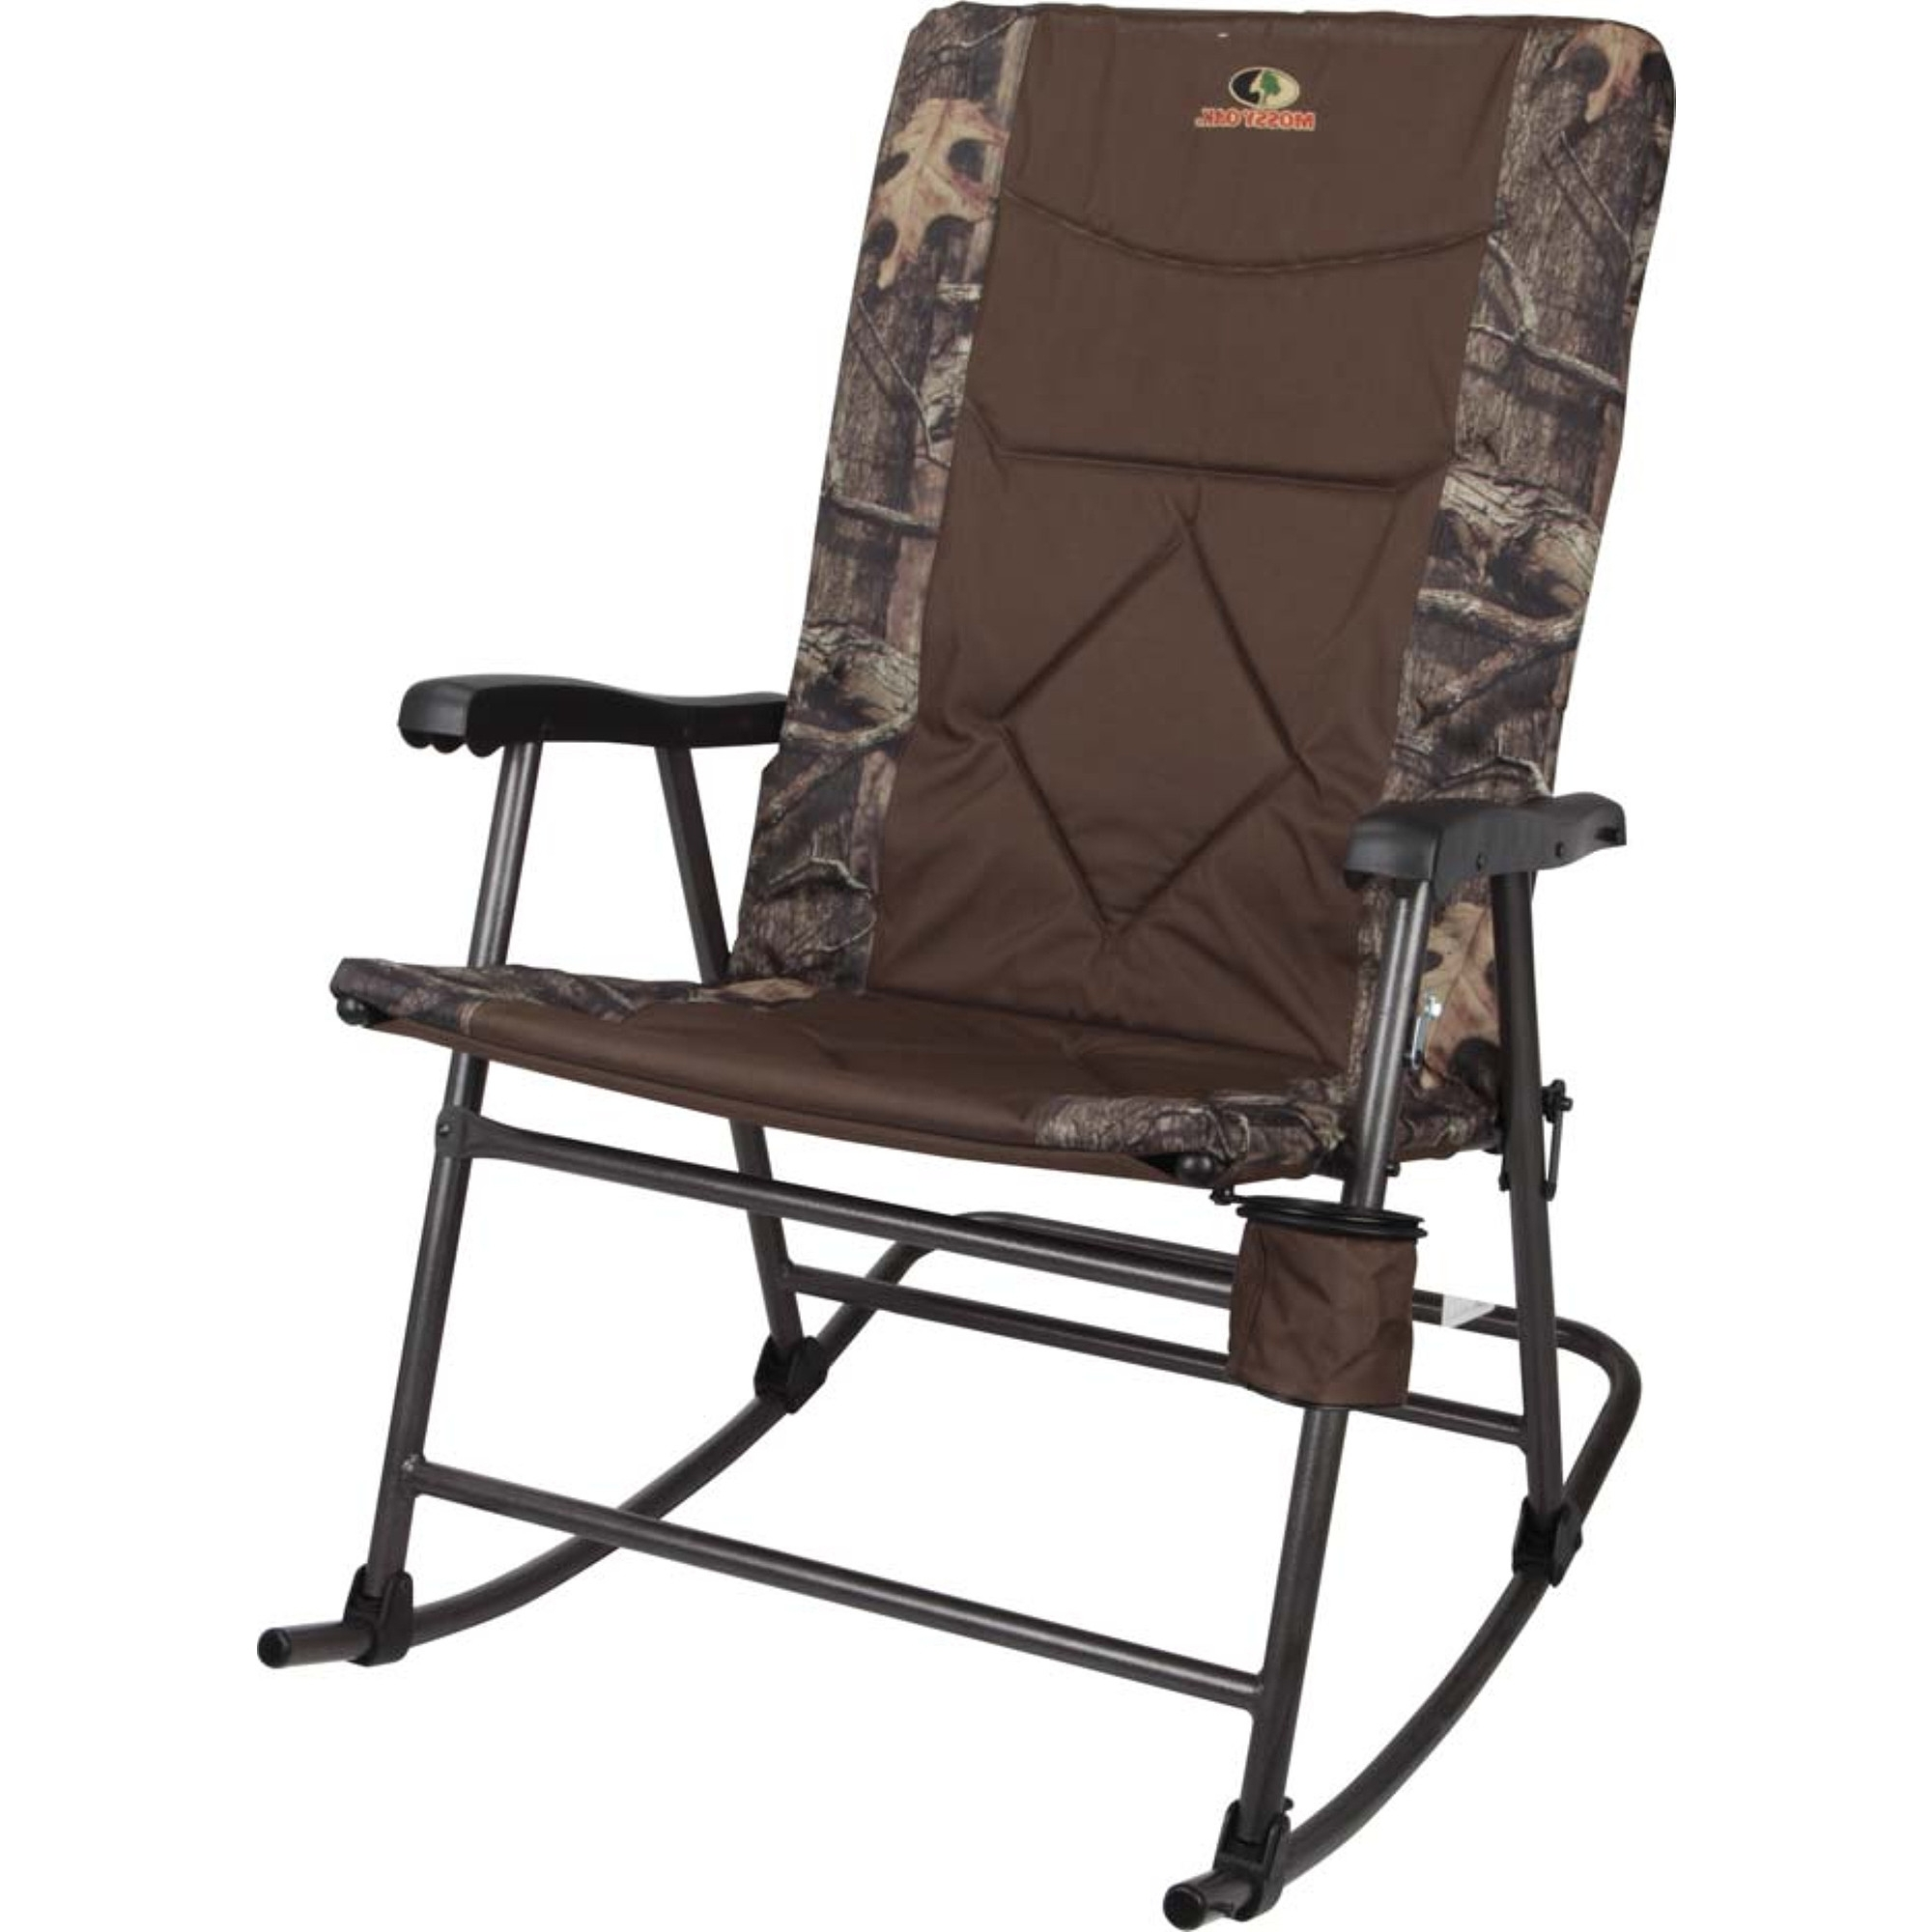 Best And Newest Cushion : Chair Seat Cushions Rocking And Backs Uk Deep Outdoor Pertaining To Rocking Chairs At Walmart (View 5 of 15)